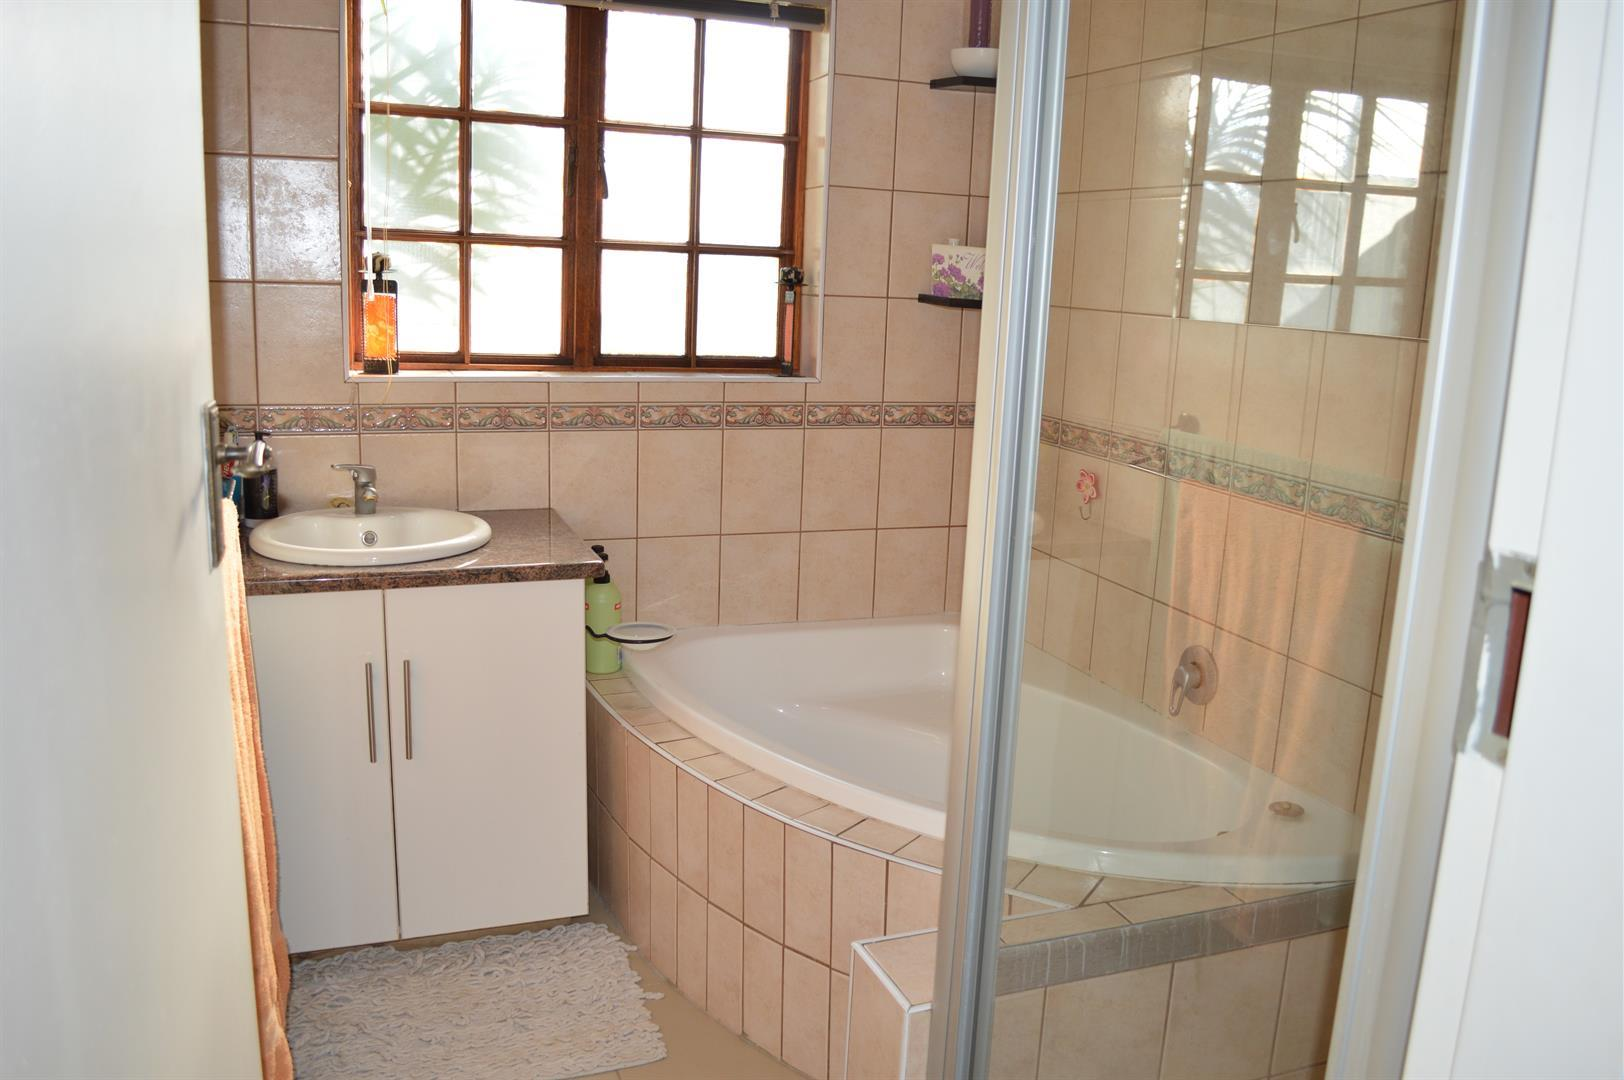 Raslouw A H property for sale. Ref No: 13442161. Picture no 16